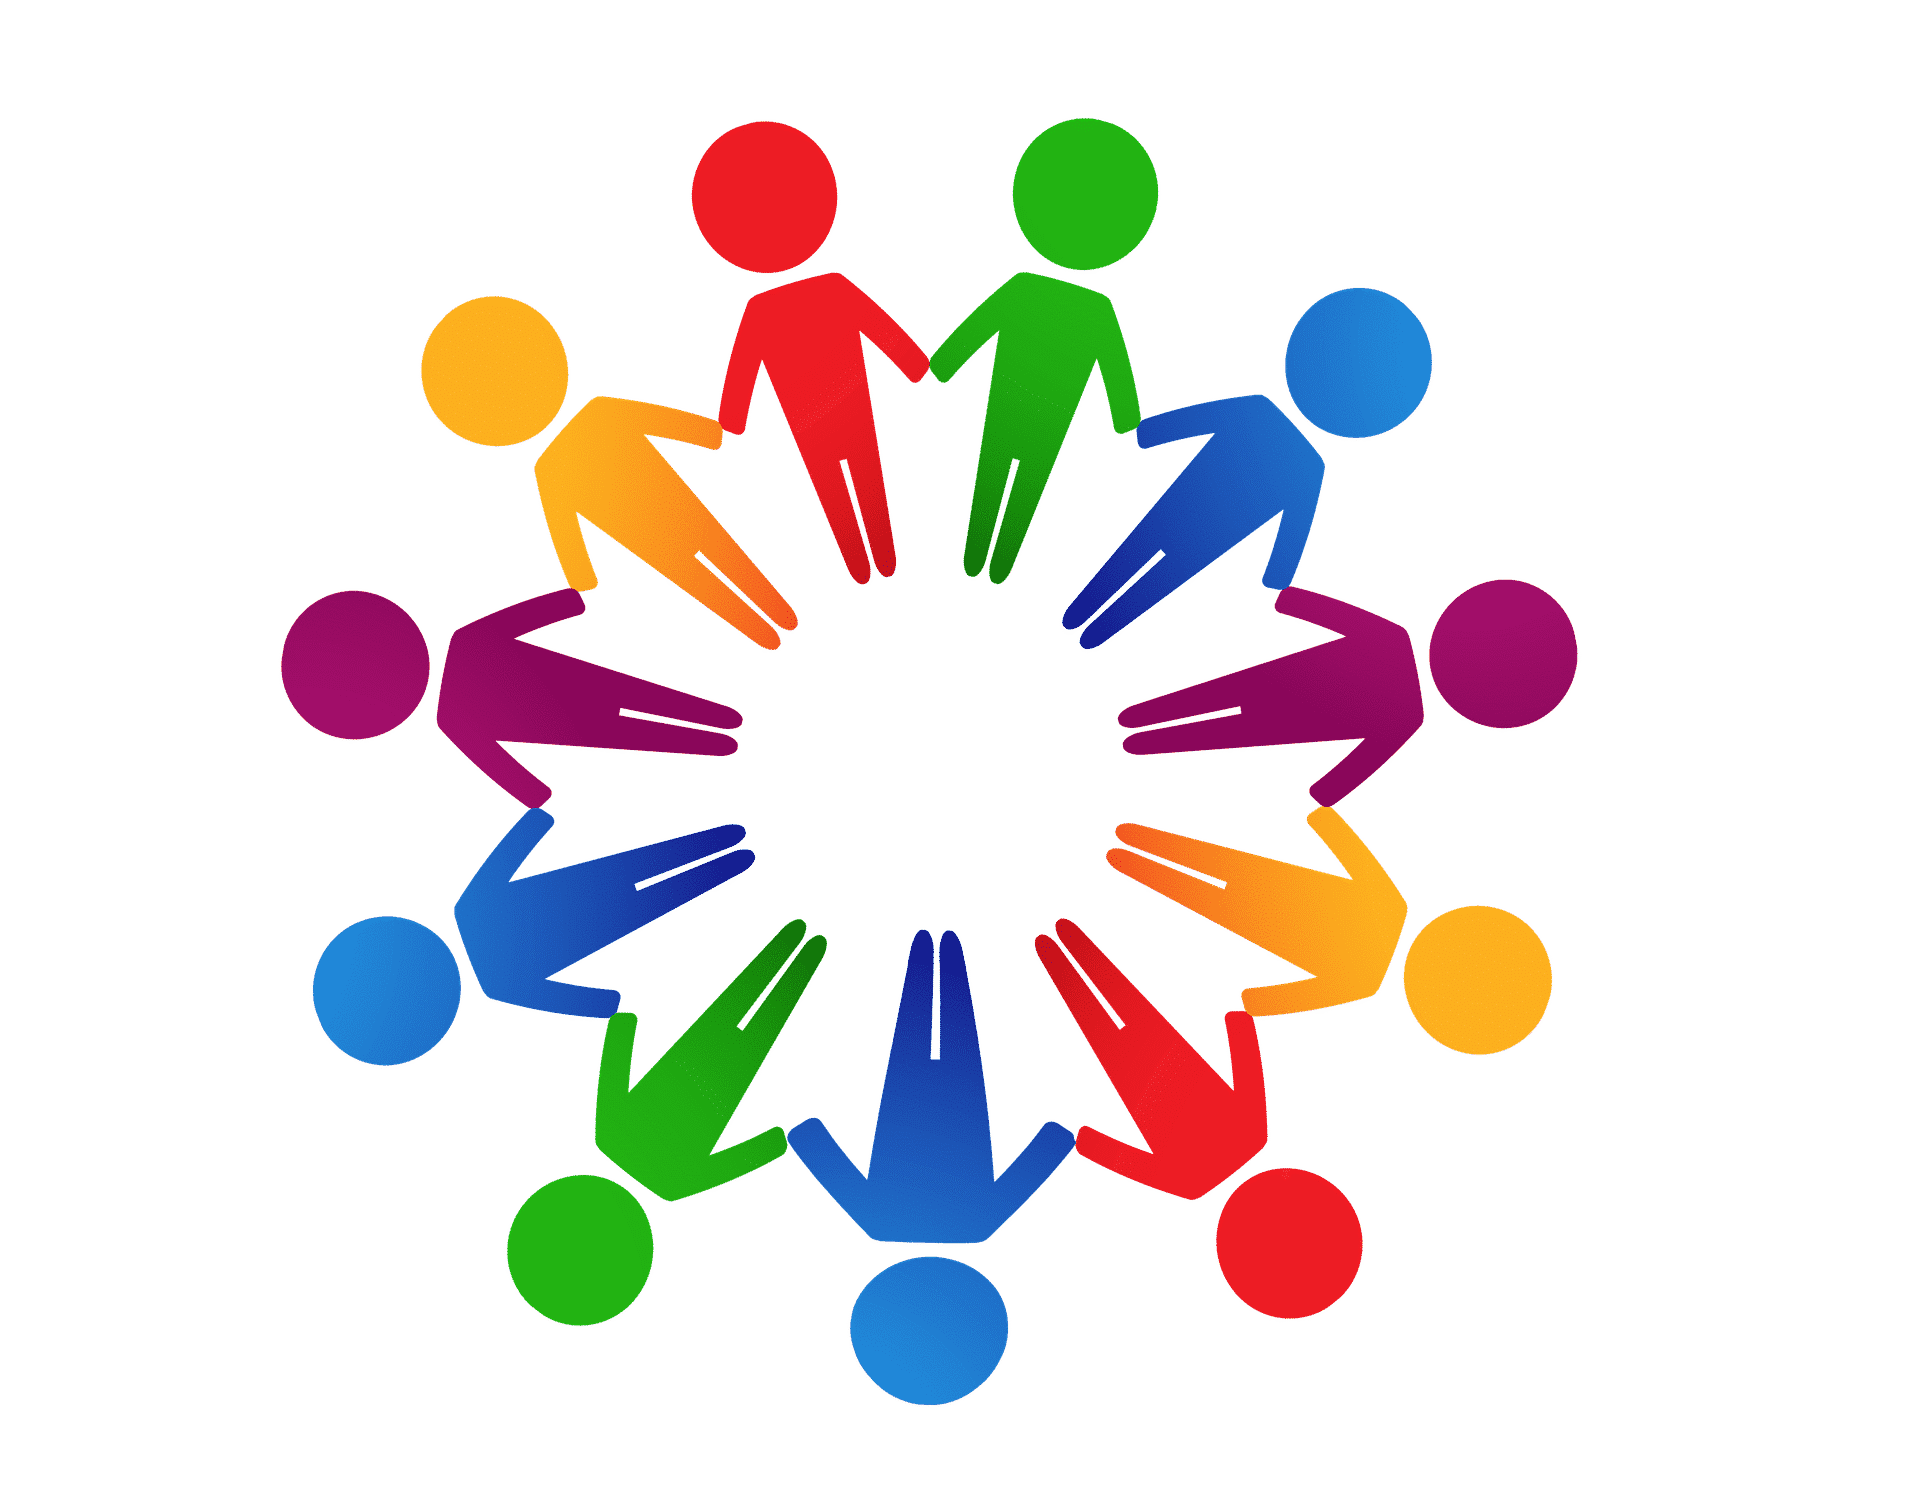 colourful human figures in circle holding hands